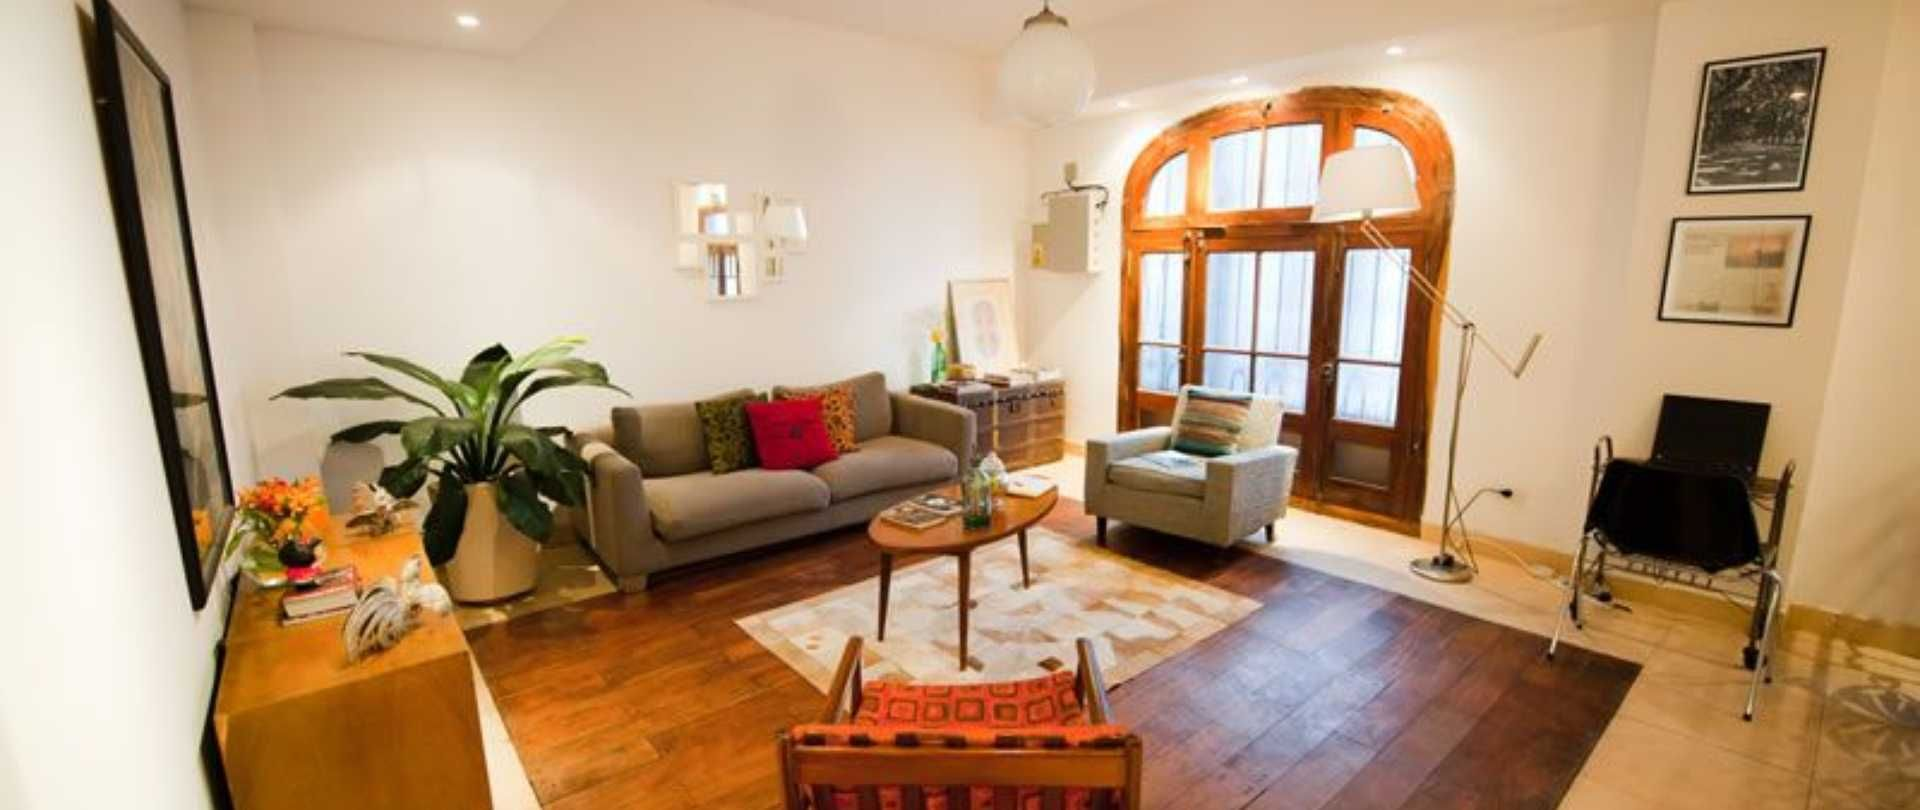 Querido Bed and Breakfast - Buenos Aires - Argentina